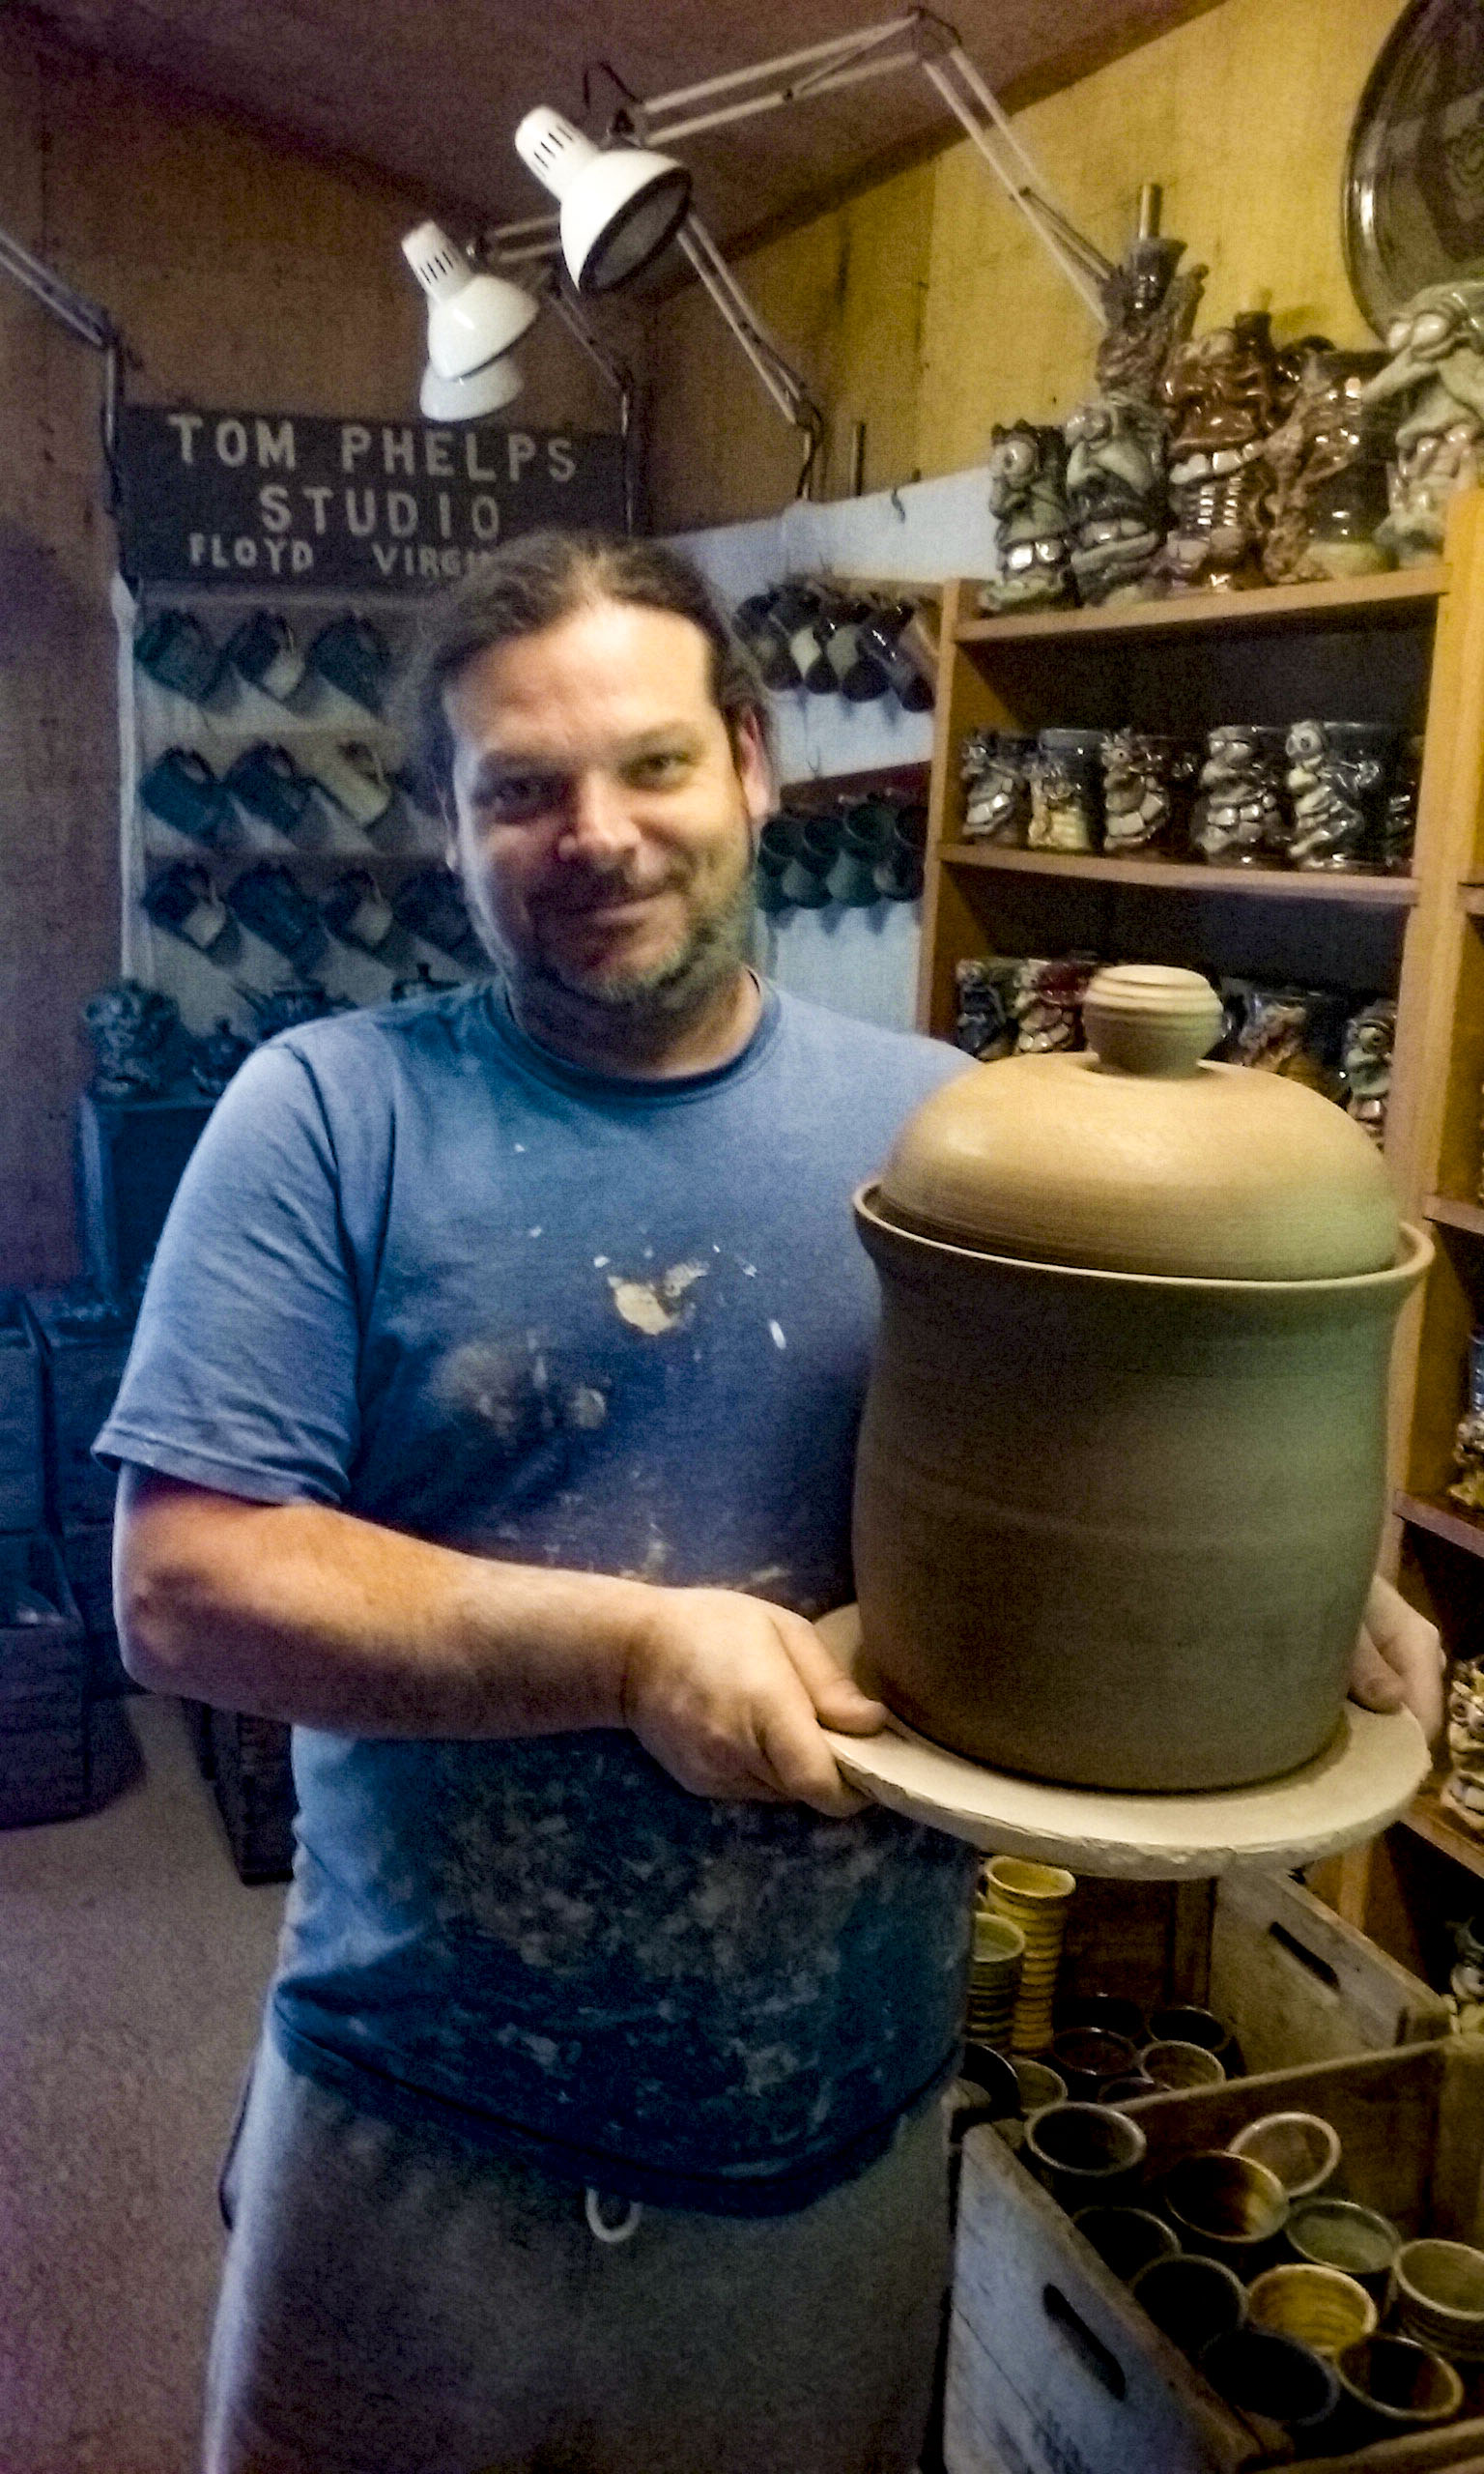 Holding Large Greenware Crock